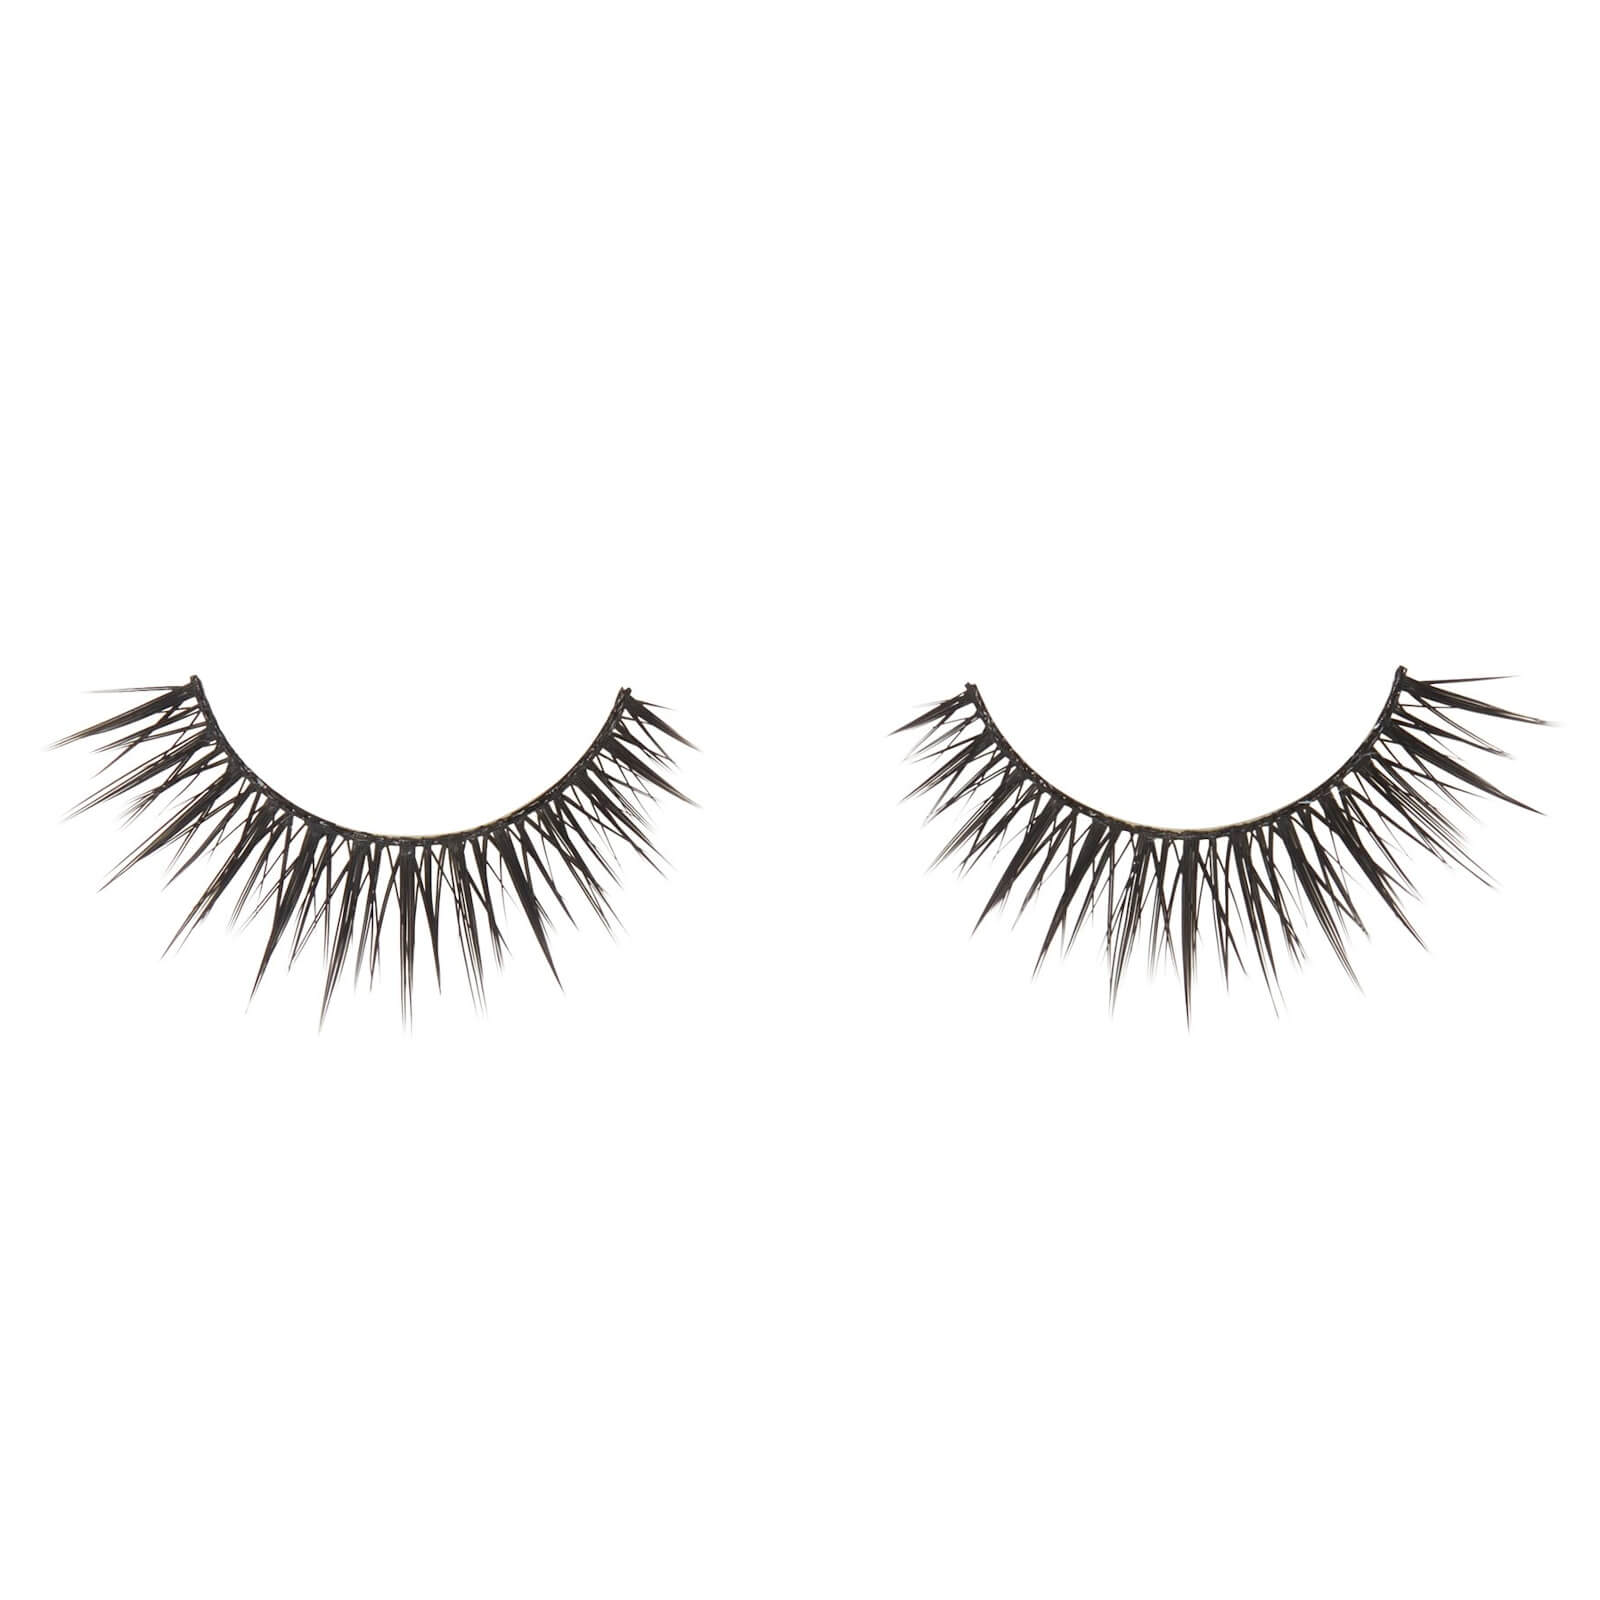 The Vintage Cosmetic Company Kitty False Strip Lashes